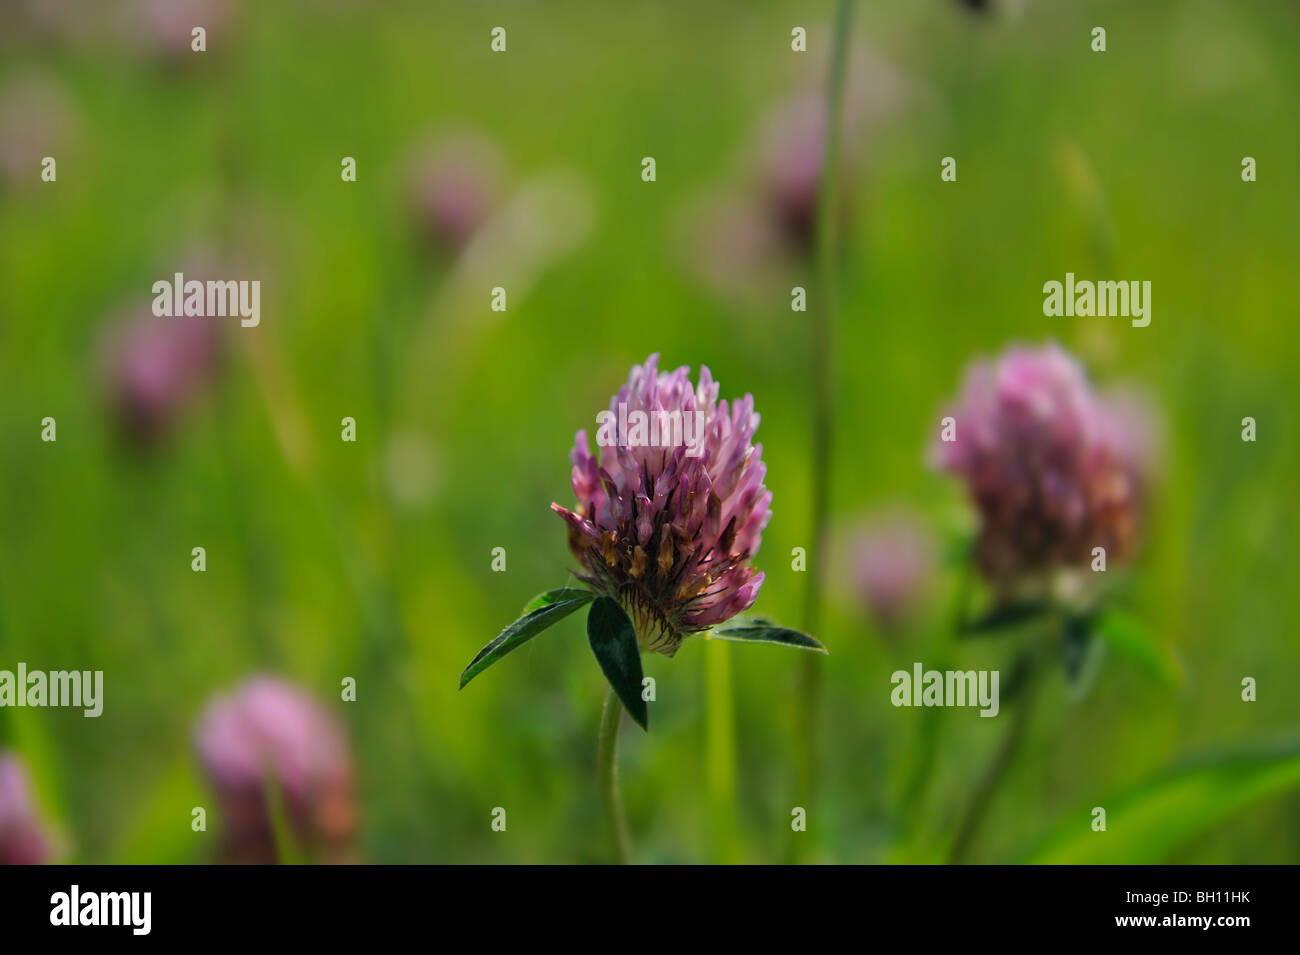 Close-up of red clover in grassy meadow - Stock Image